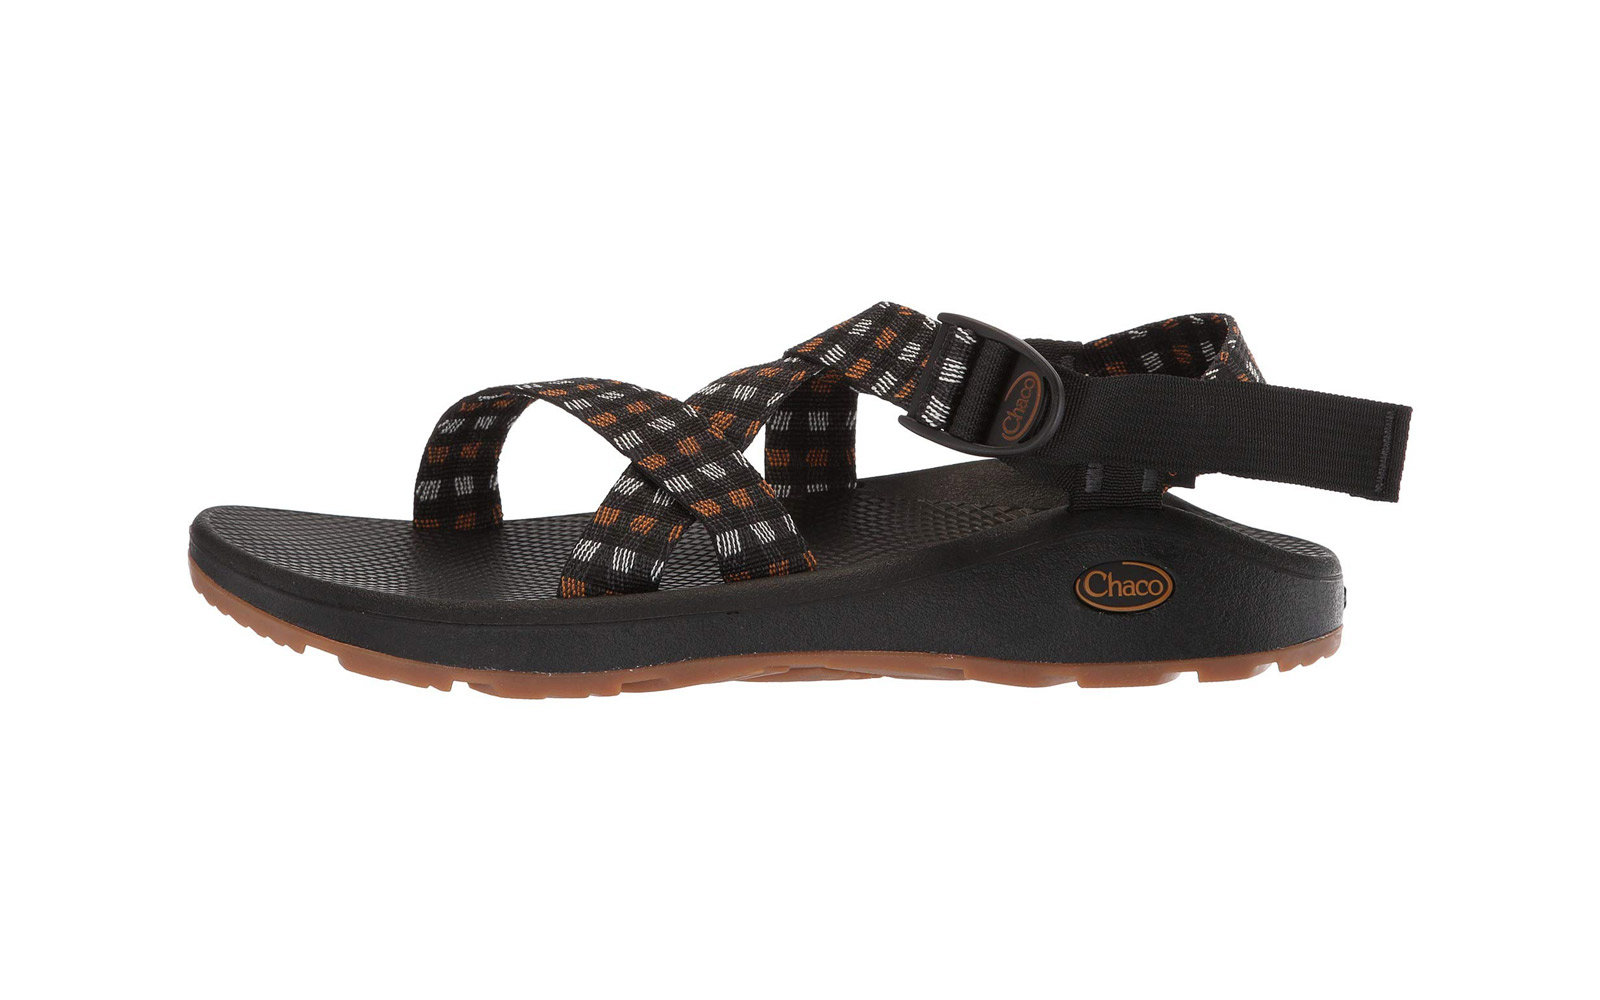 f420847fb0c4ec The Best Men s Sandals to Pack for Your Next Vacation